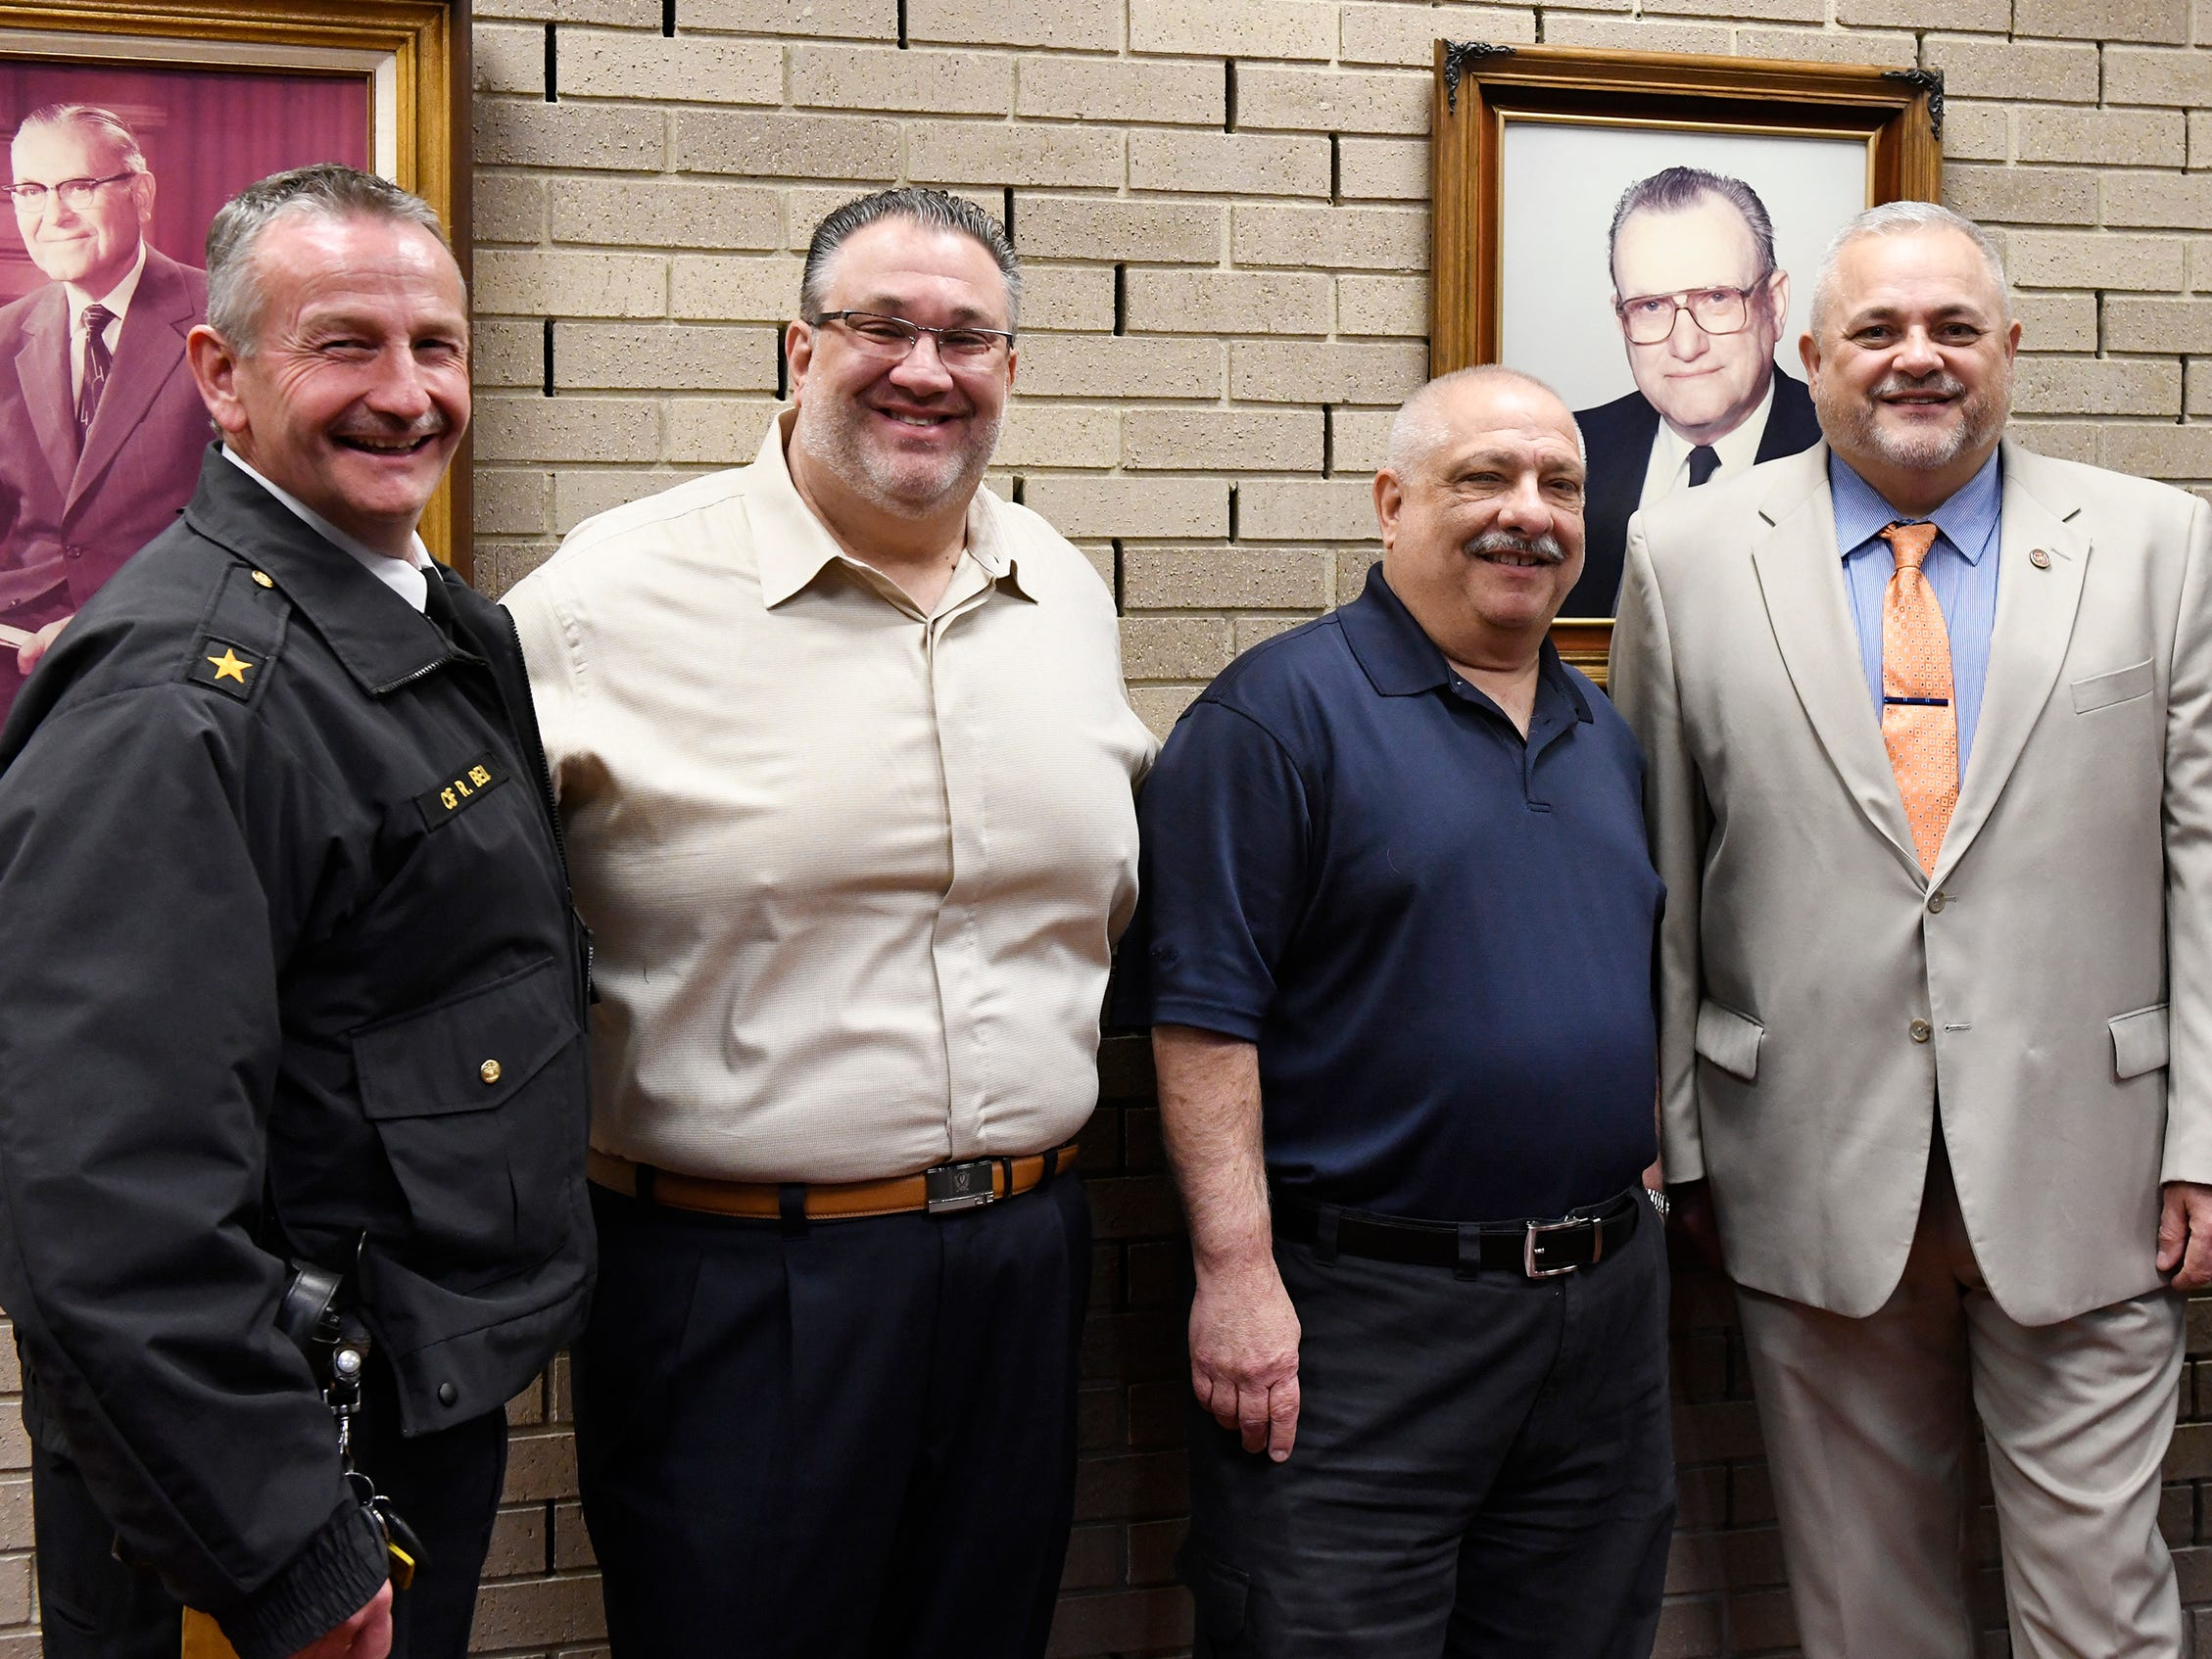 Mayor Anthony Fanucci swore in eight police officers at Vineland City Hall on Wednesday, Feb.27, 2019.